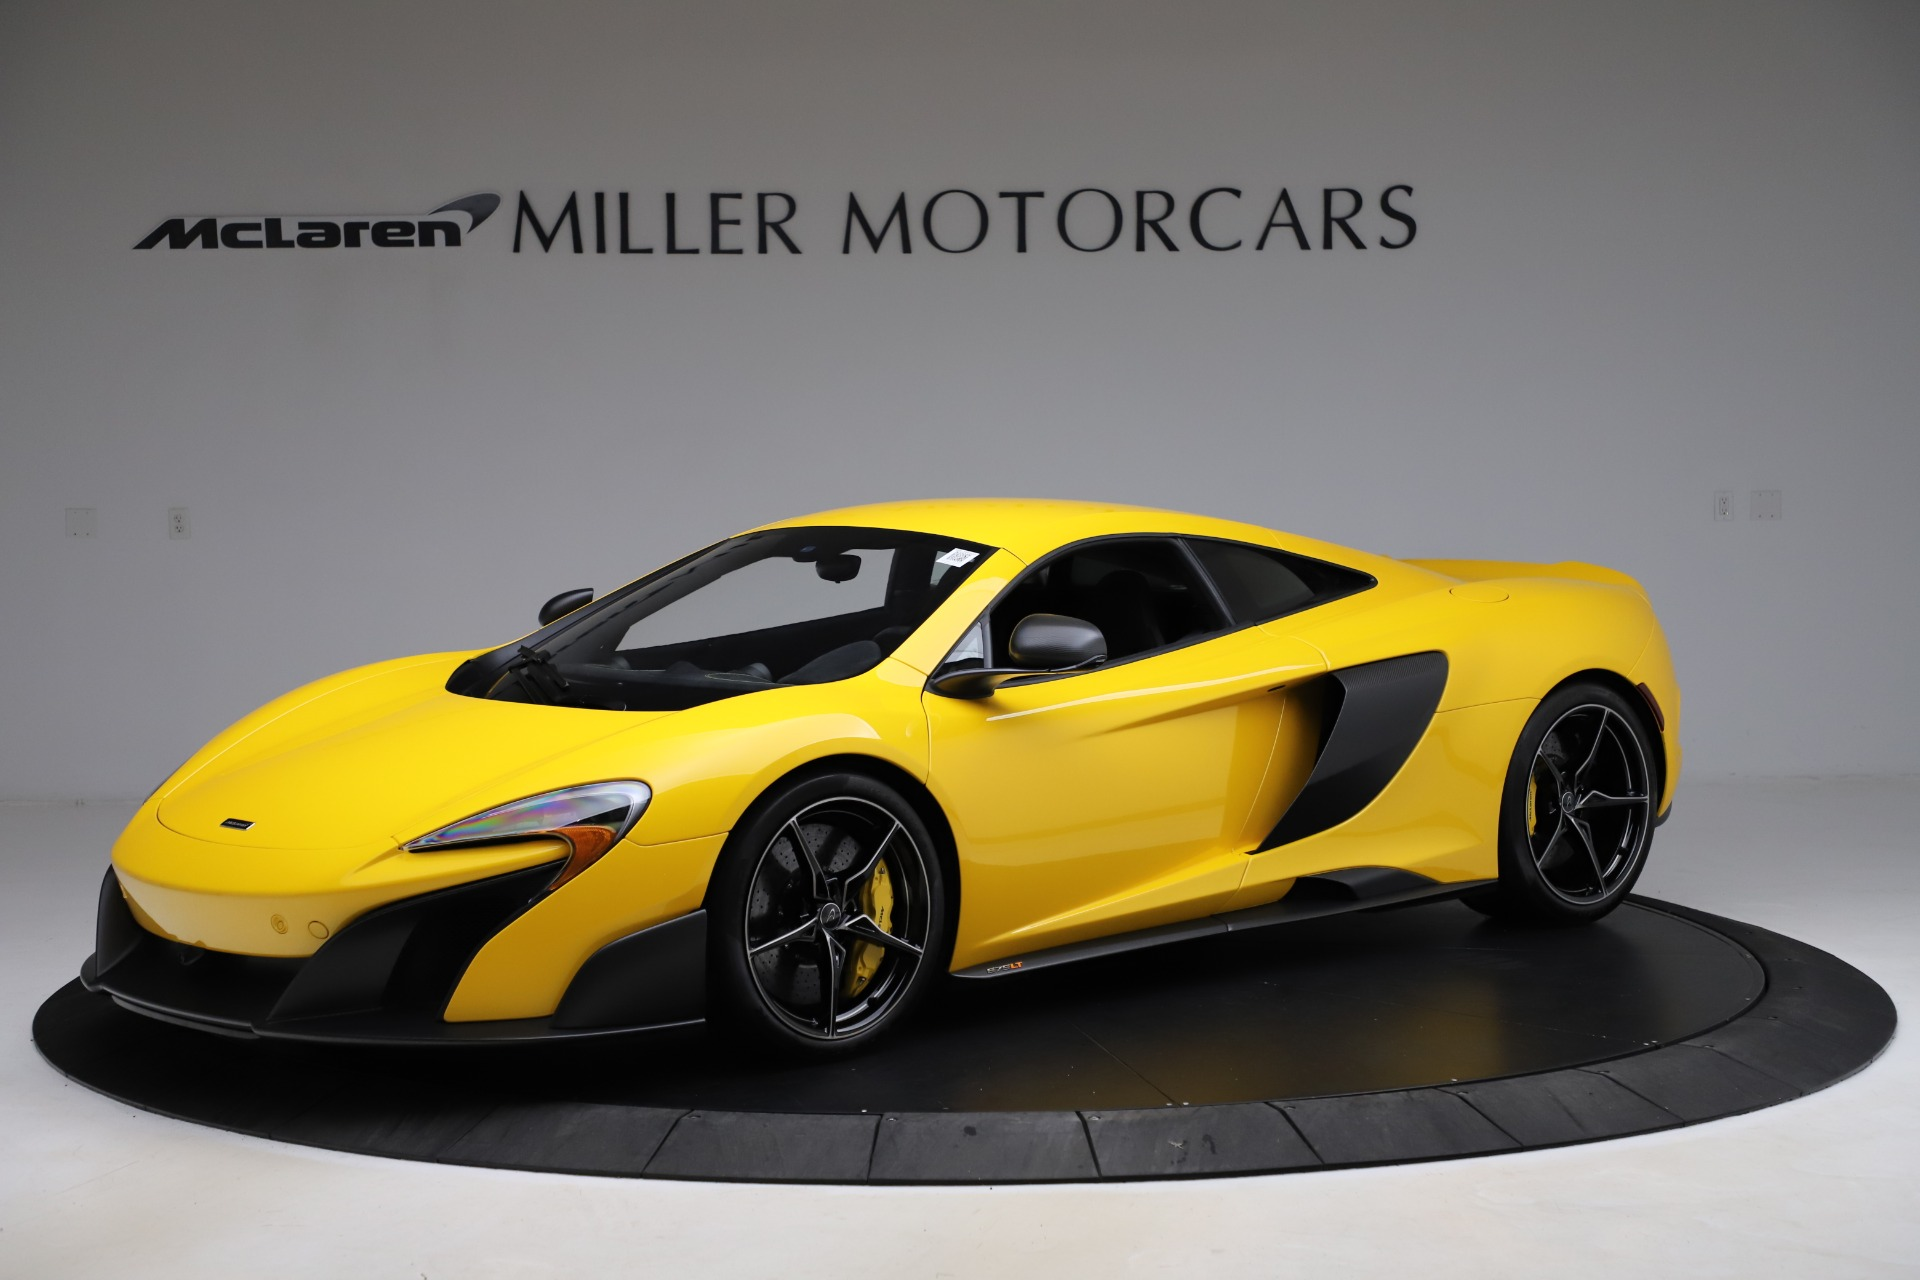 Used 2016 McLaren 675LT Coupe for sale $219,900 at Bentley Greenwich in Greenwich CT 06830 1